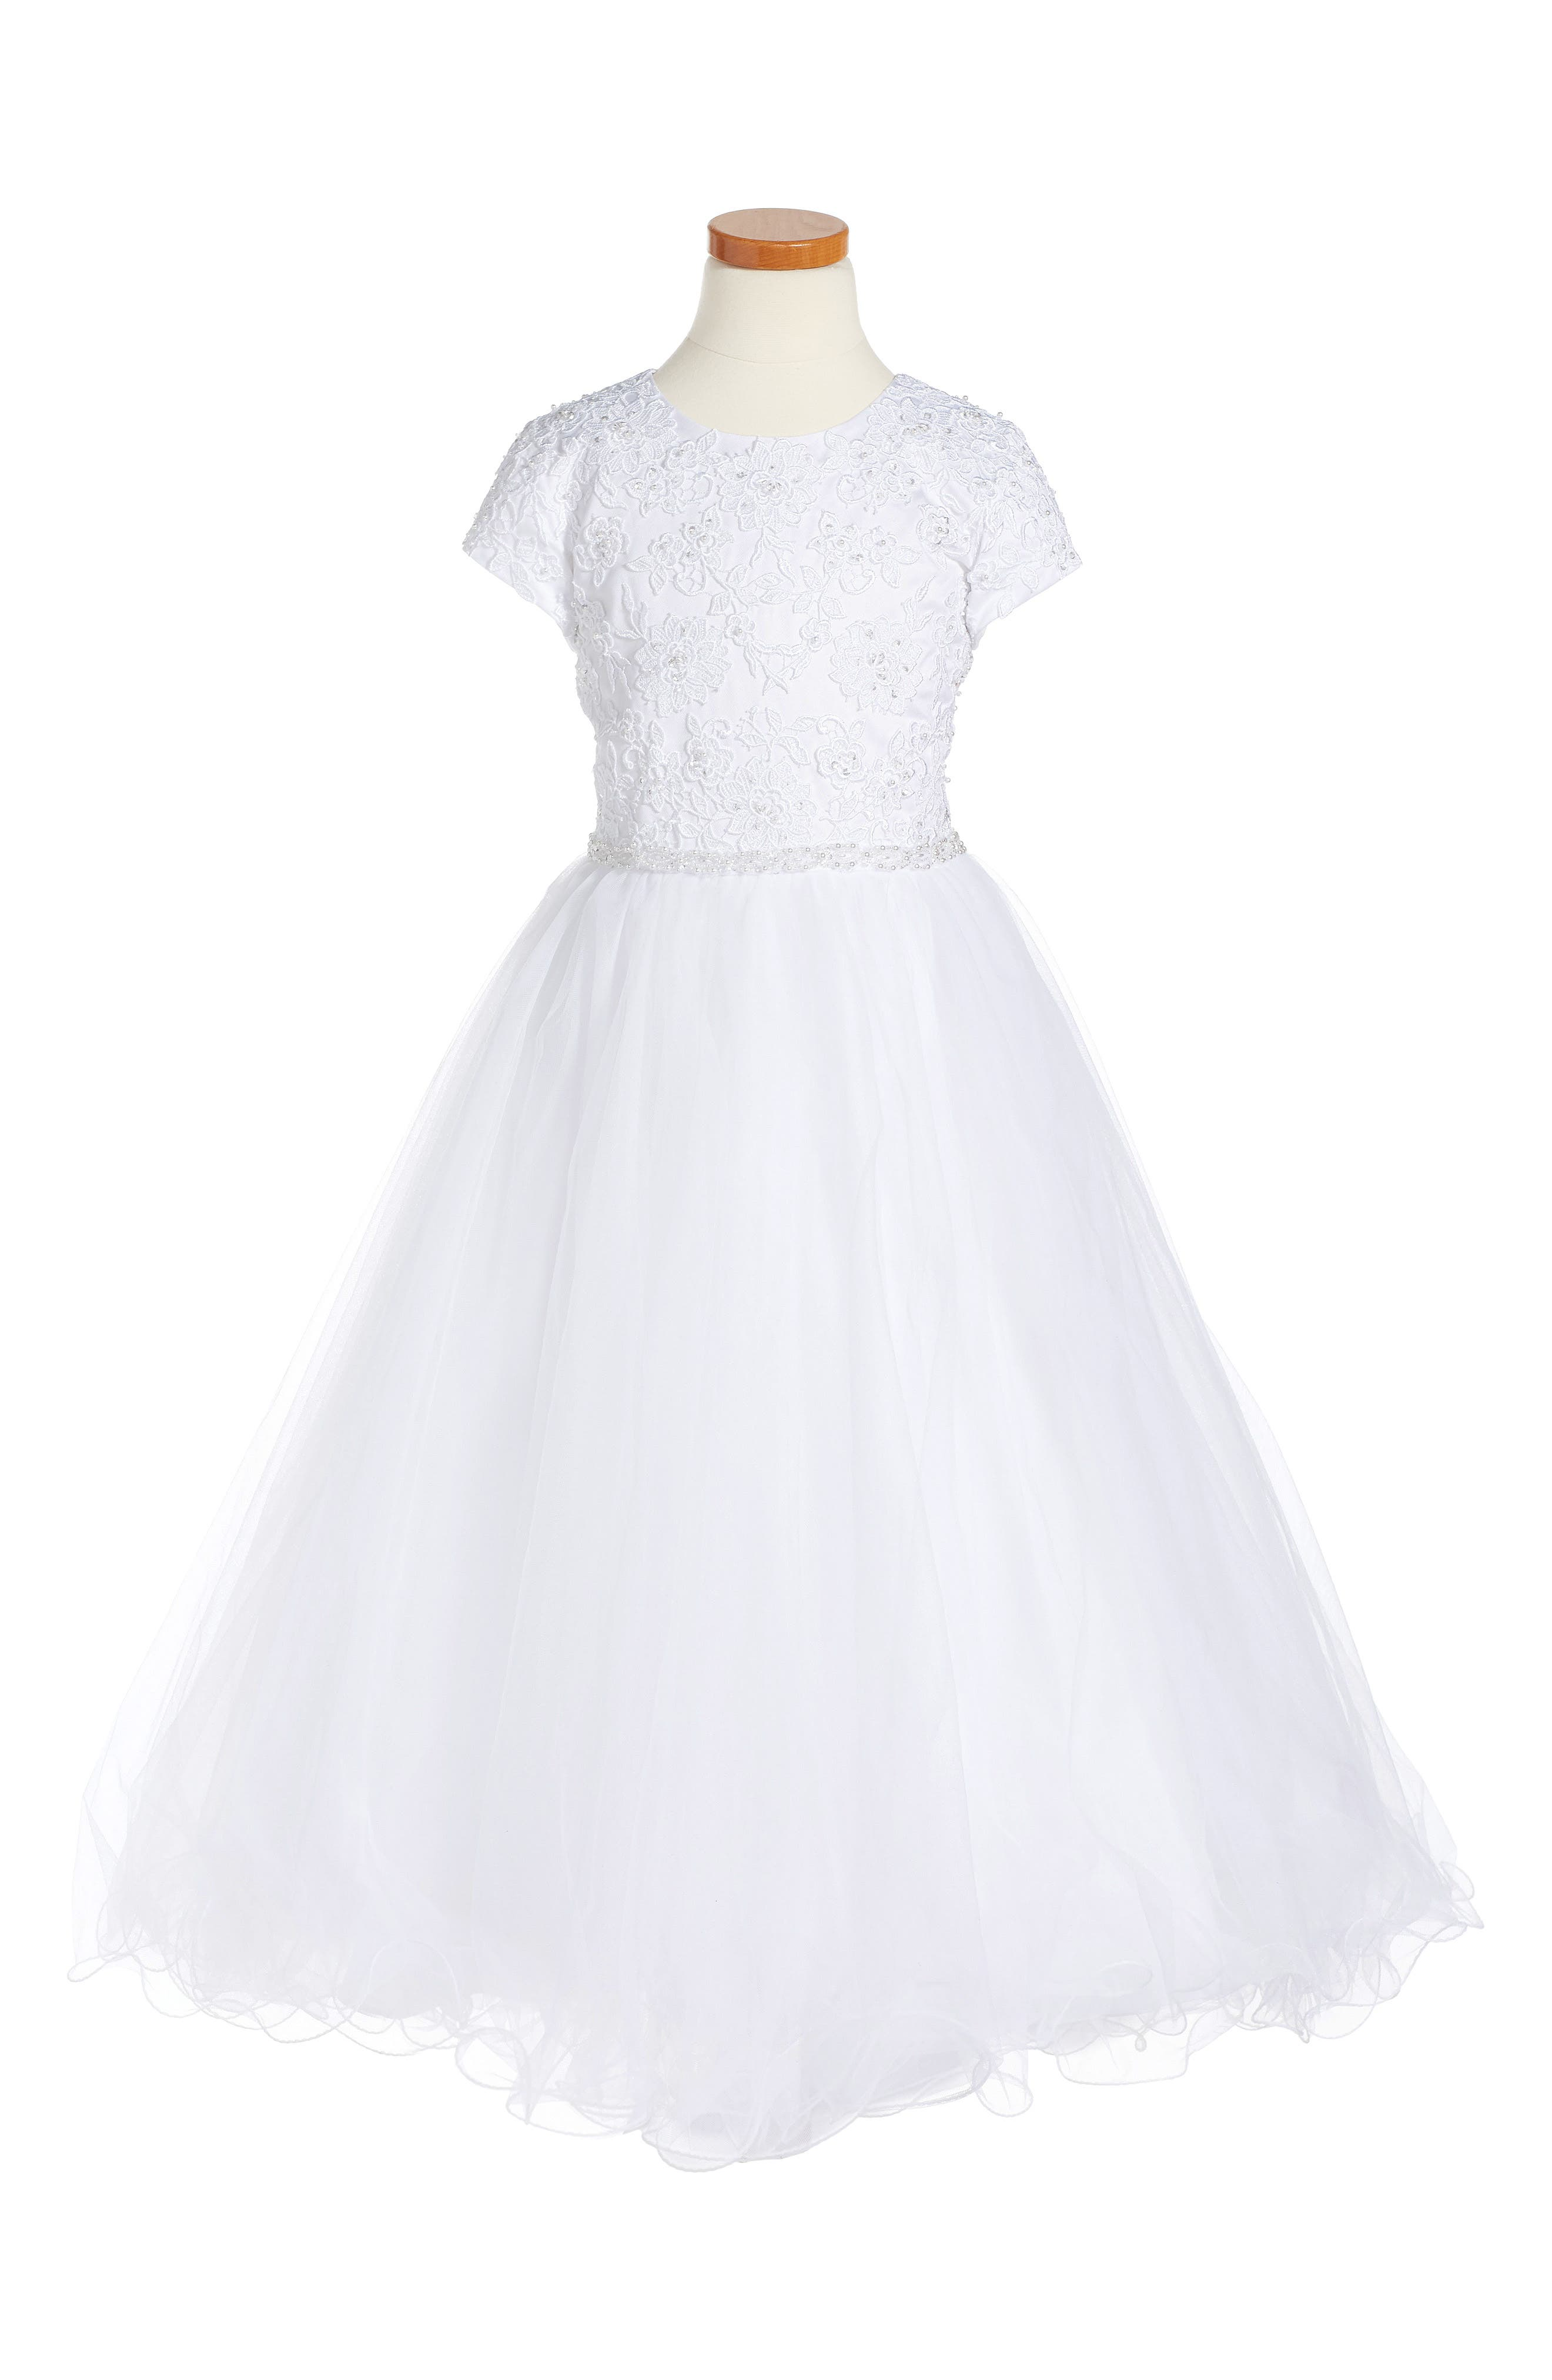 Alternate Image 1 Selected - Joan Calabrese for Mon Cheri Floral Appliqué First Communion Dress (Little Girls & Big Girls)